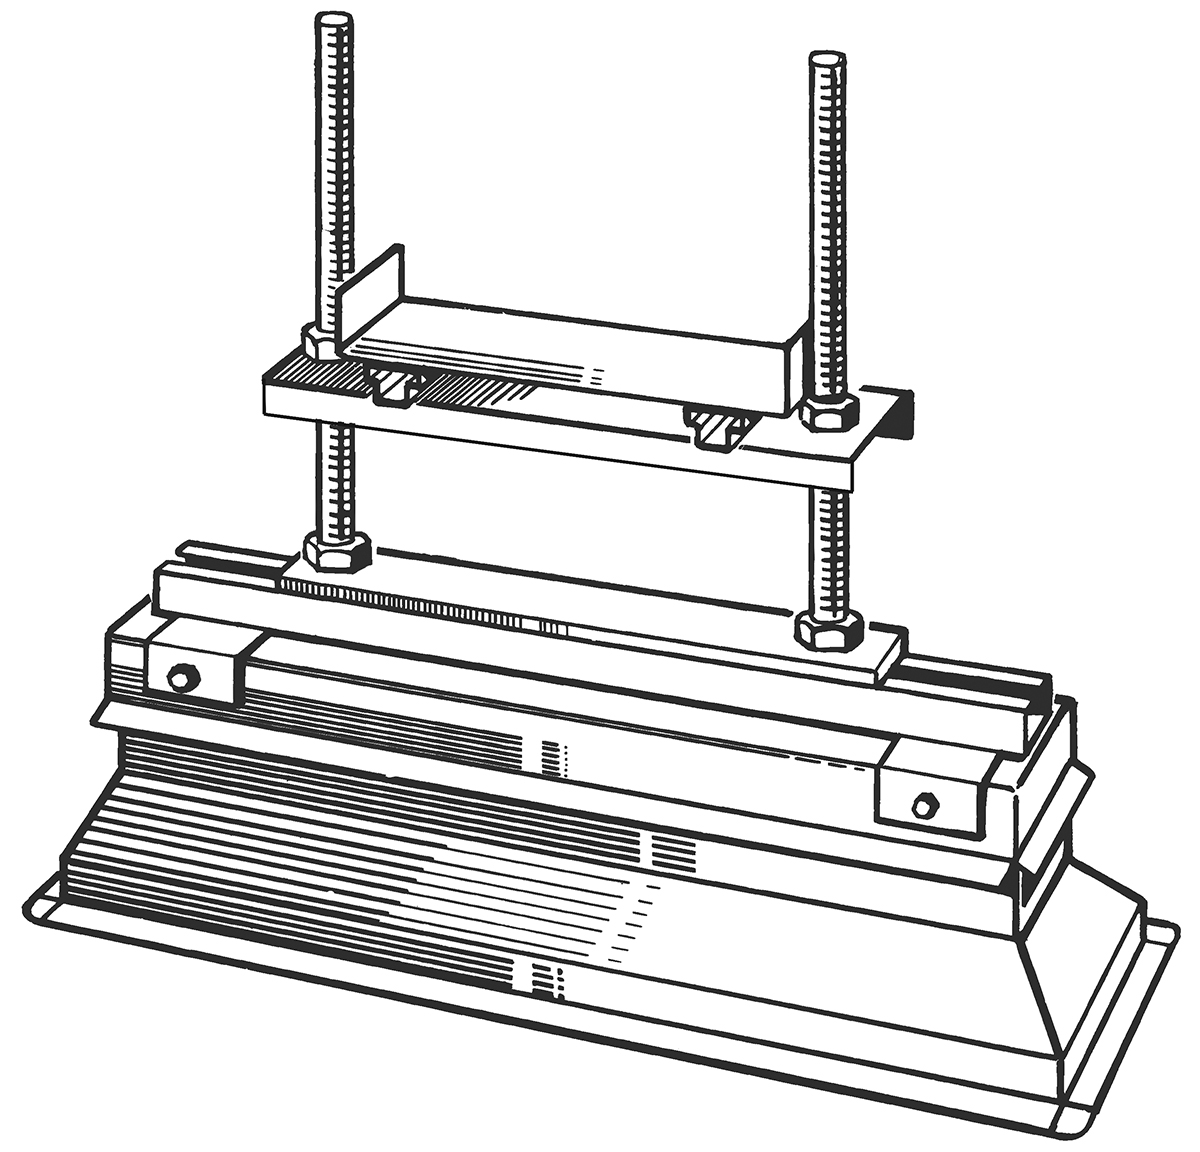 Air Conditioning Ducts Support Details : Standard rectangular duct supports rps